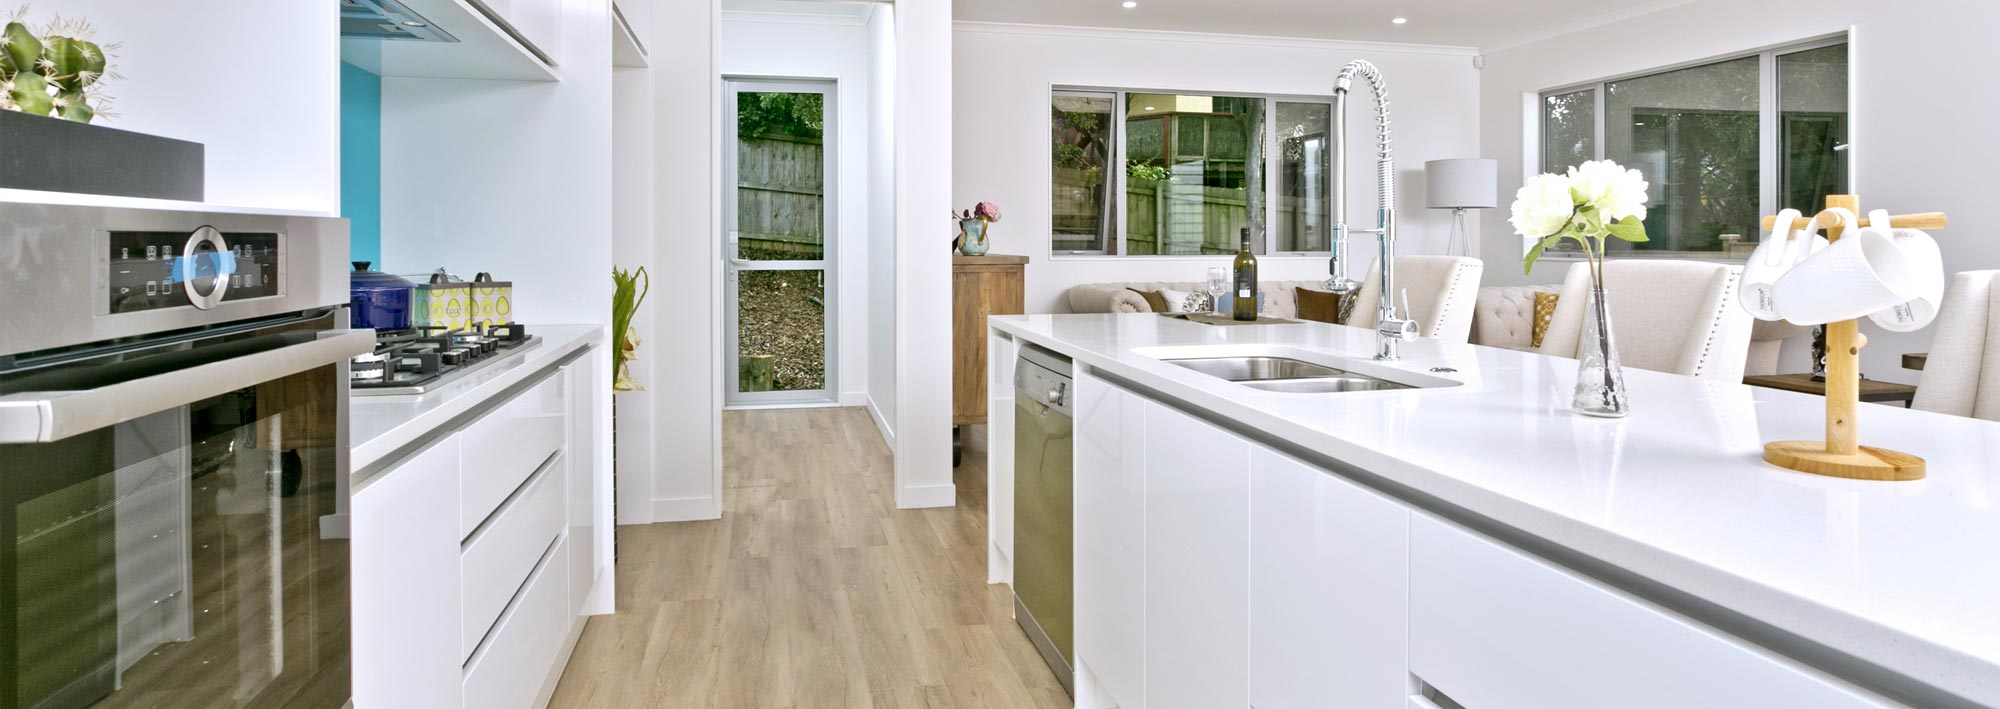 Classic Kitchen Renovations Auckland - Renovate with Superior ...